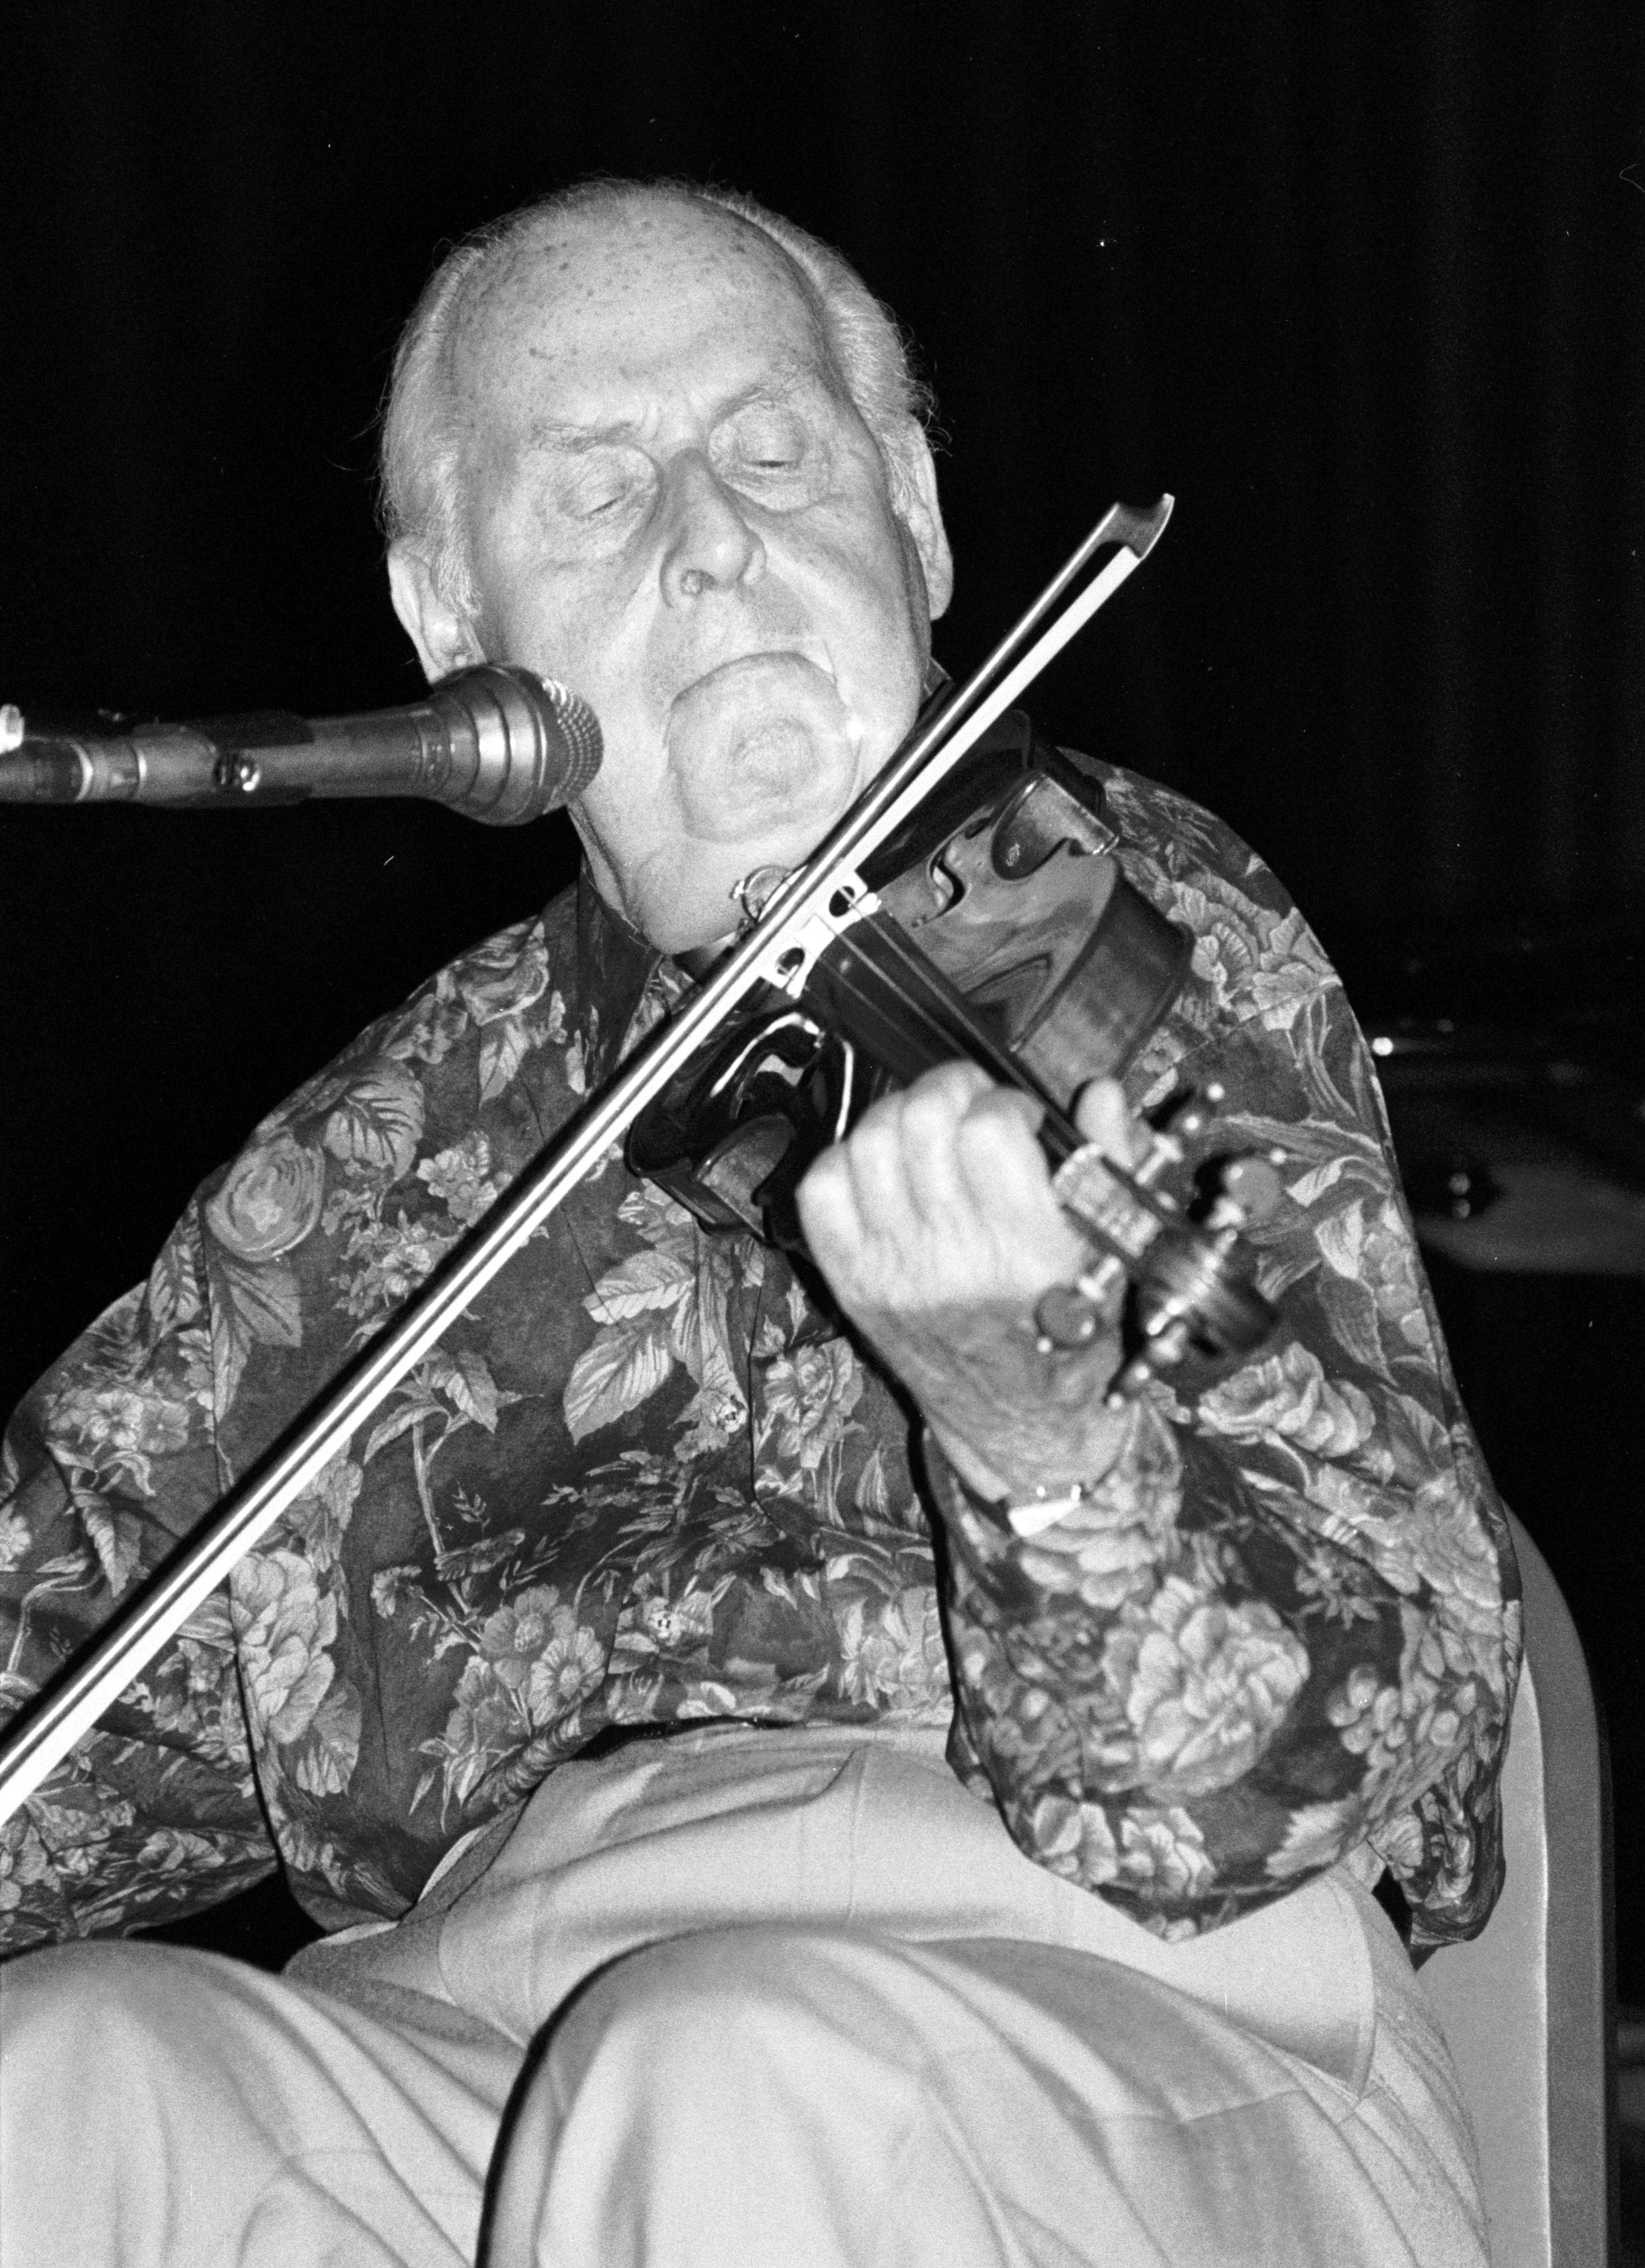 Stephane Grappelli - violinist